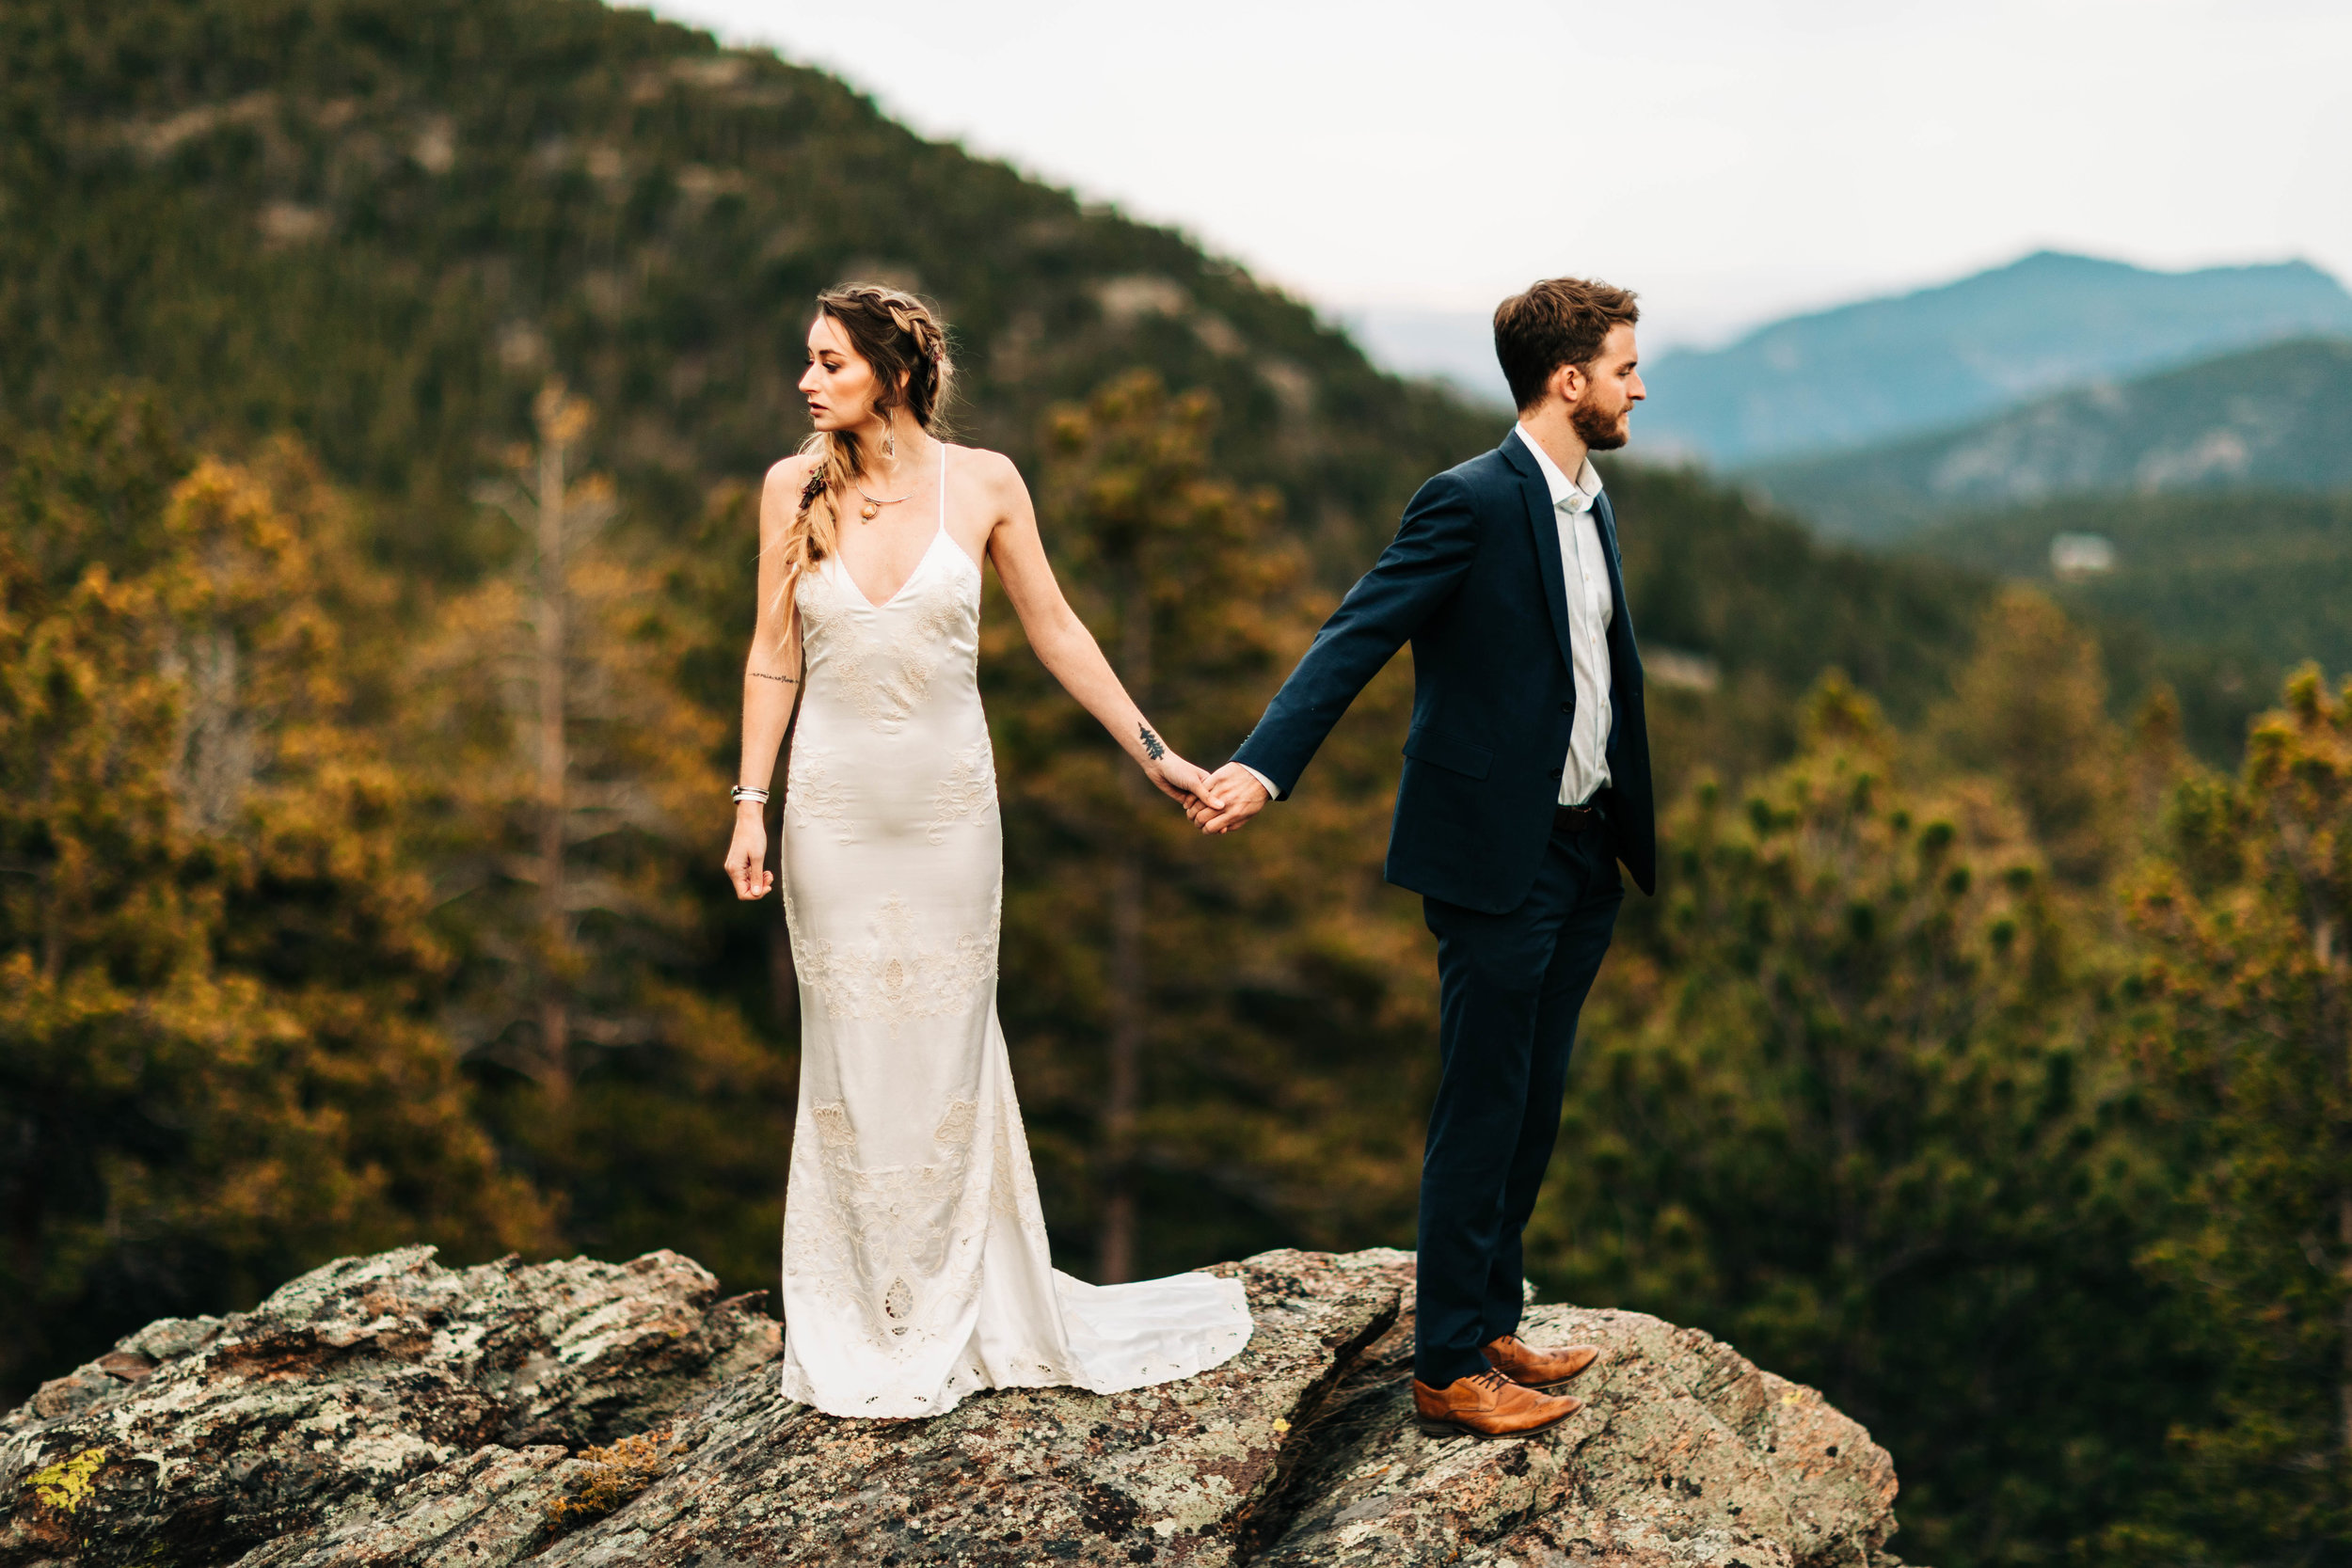 Colorado elopement photos on the edge of a cliff | adventure elopement photographers